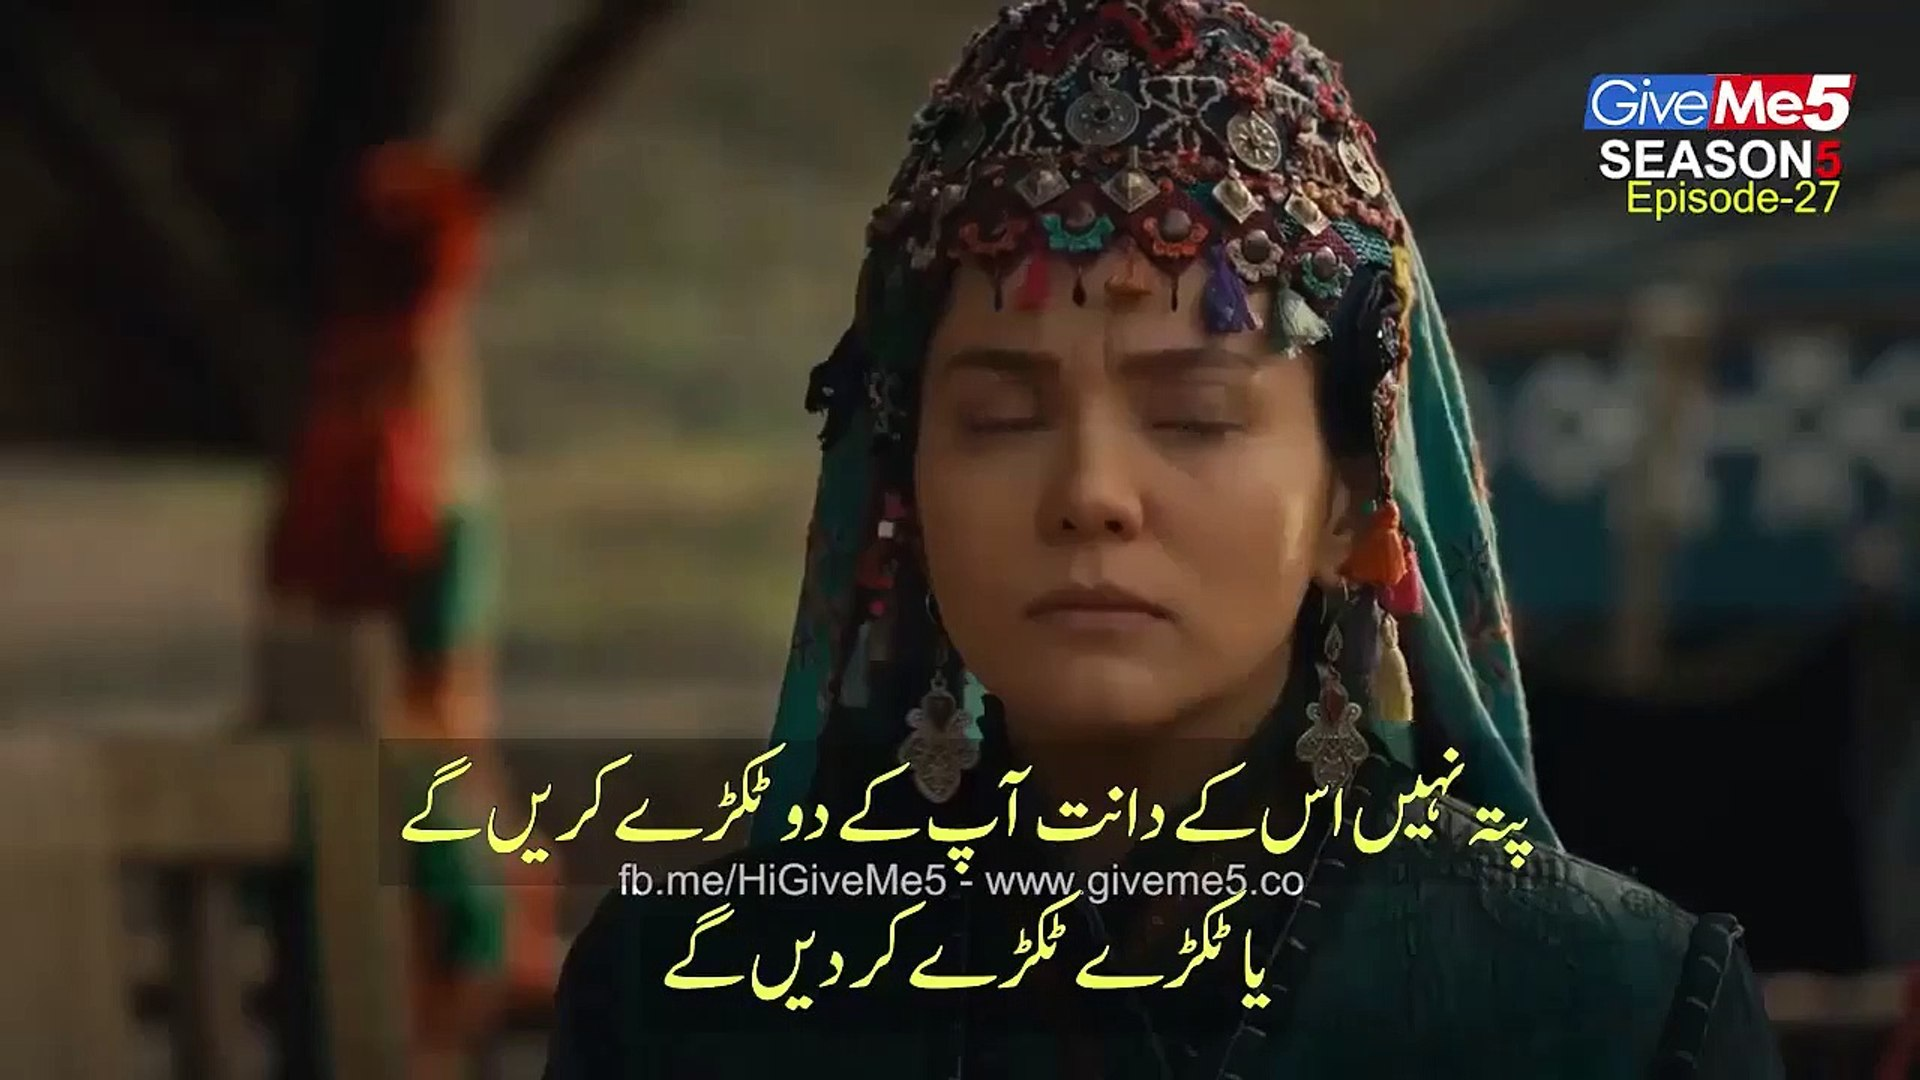 Dirilis Ertugrul Ghazi Season 5 in Urdu Subtitle Episode 27 & 28